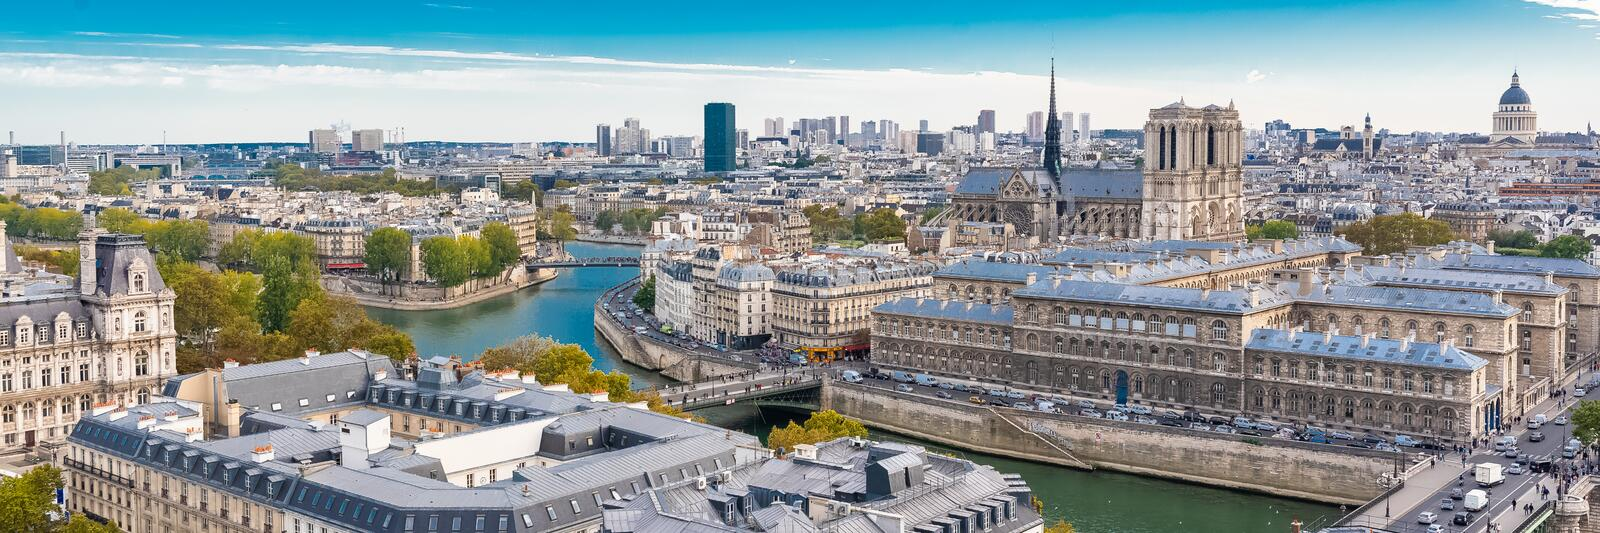 Paris, aerial view royalty free stock images